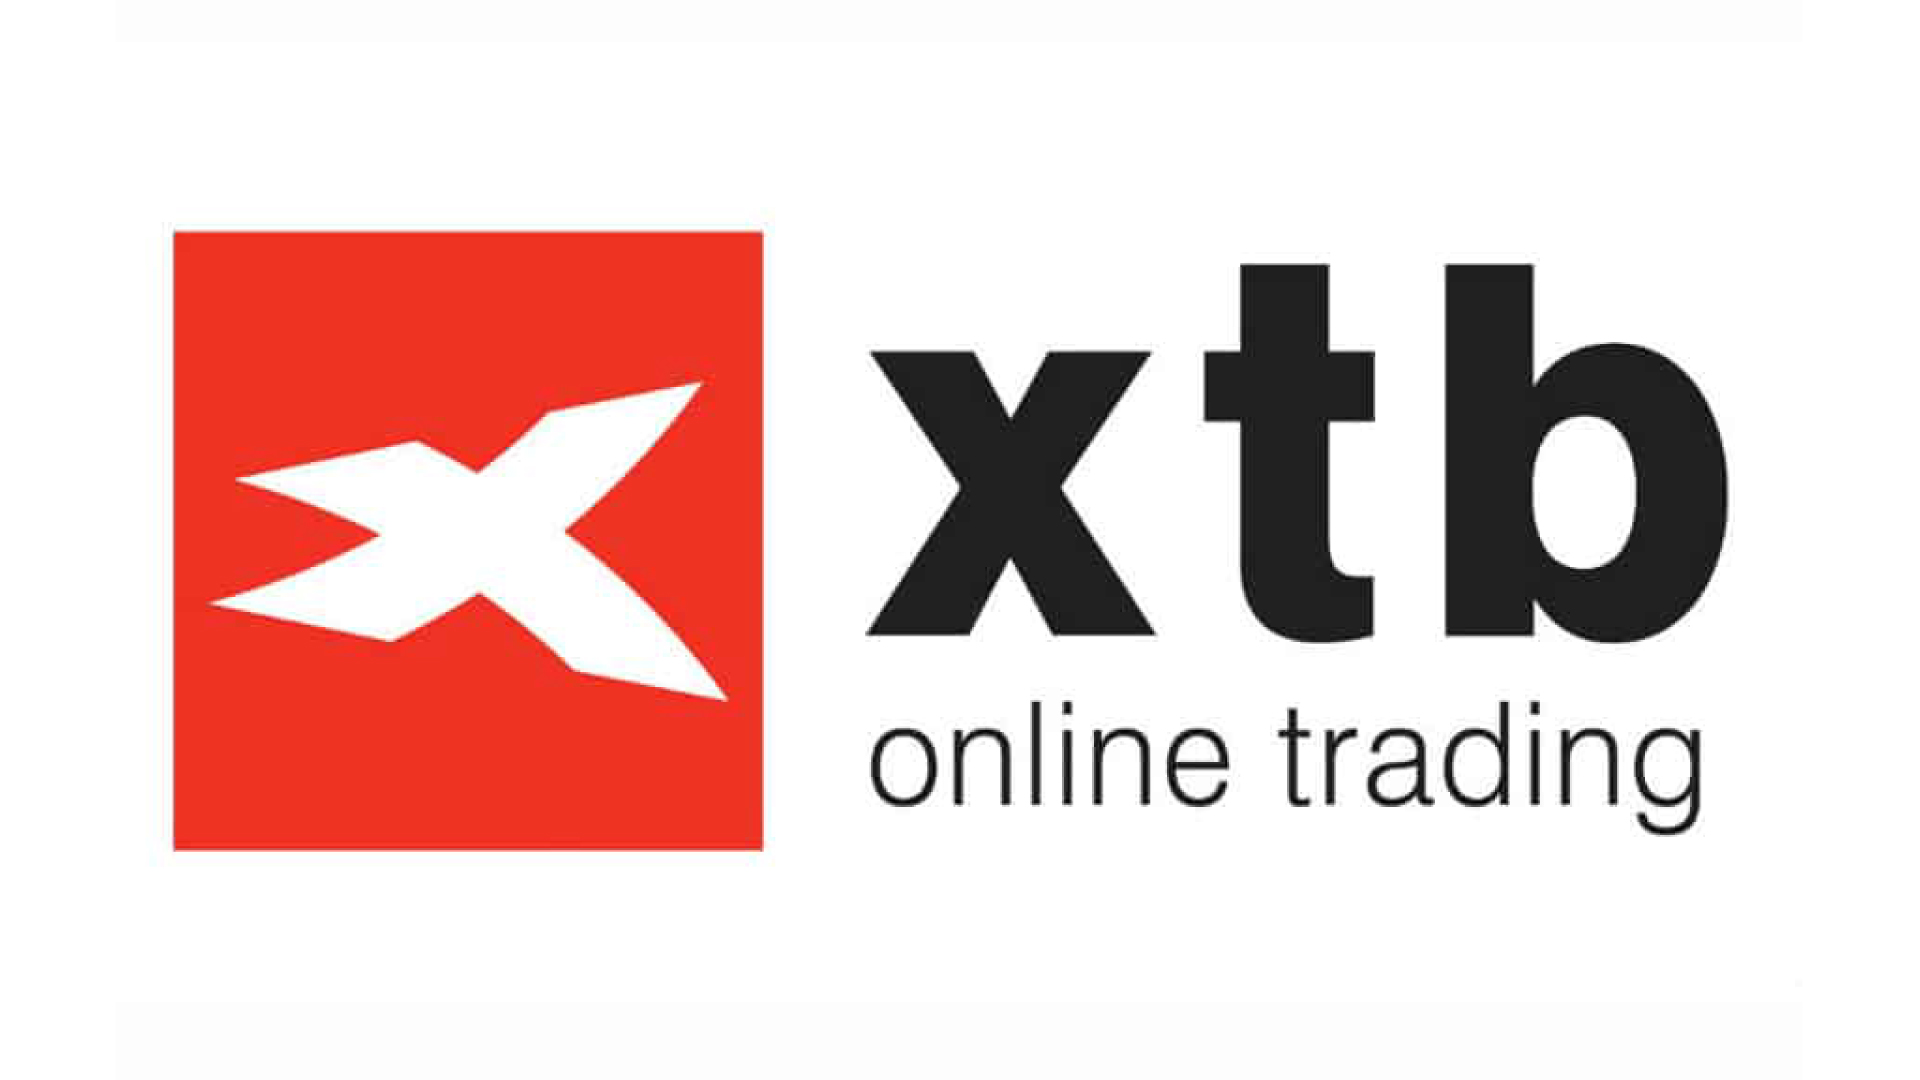 Should you start trading with XTB?